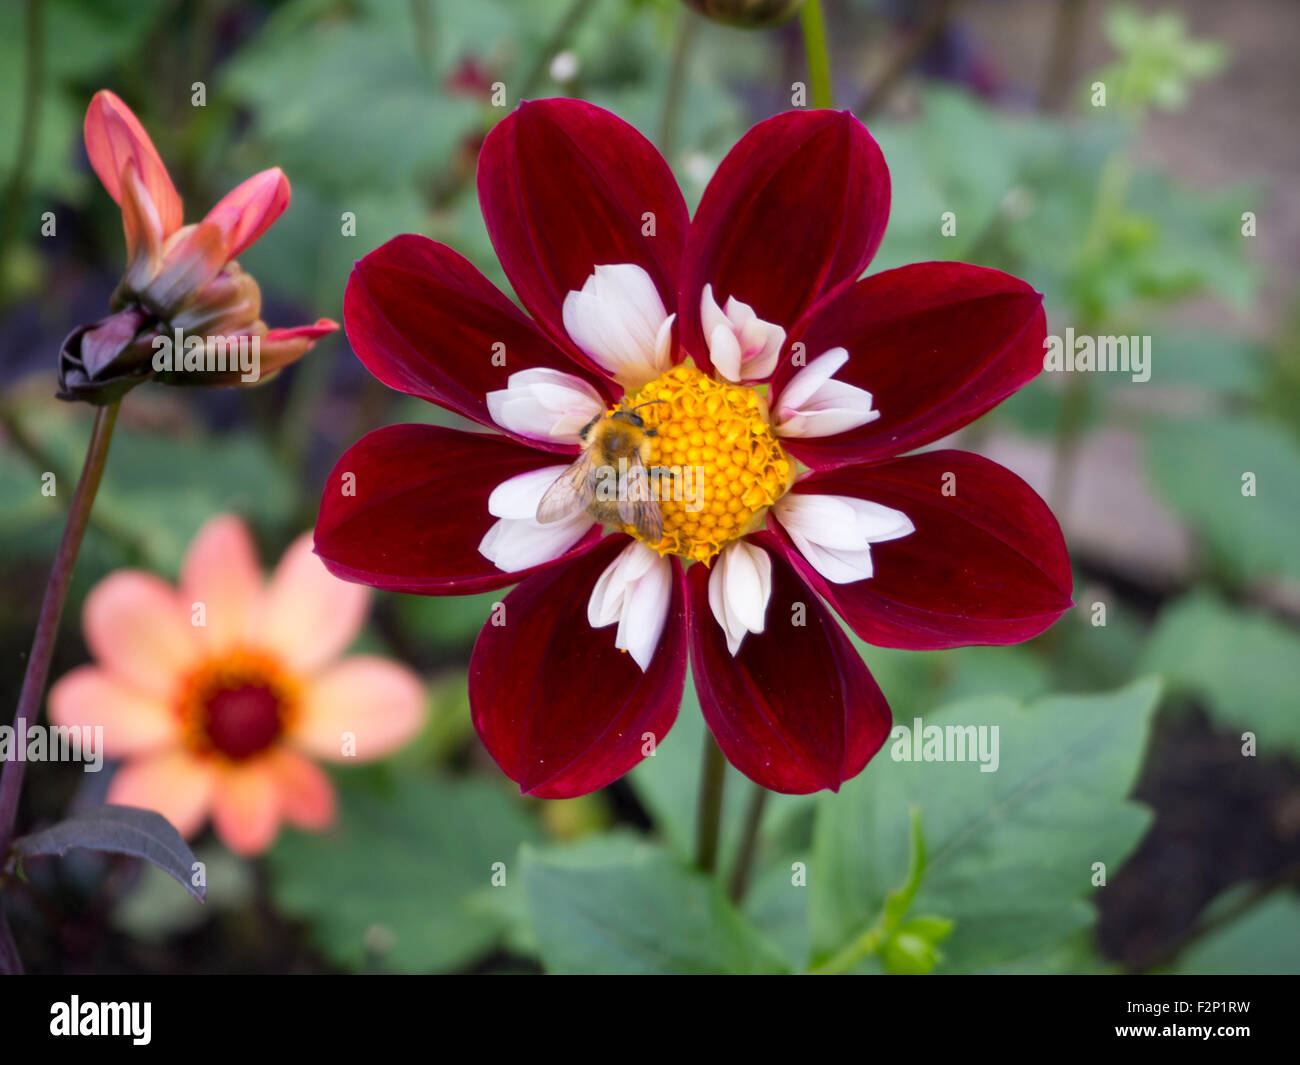 Varieties of dahlia blooms stock photos varieties of dahlia blooms varieties of dahlia blooms in a beautiful gardenrmine petals with white ruffle and yellow izmirmasajfo